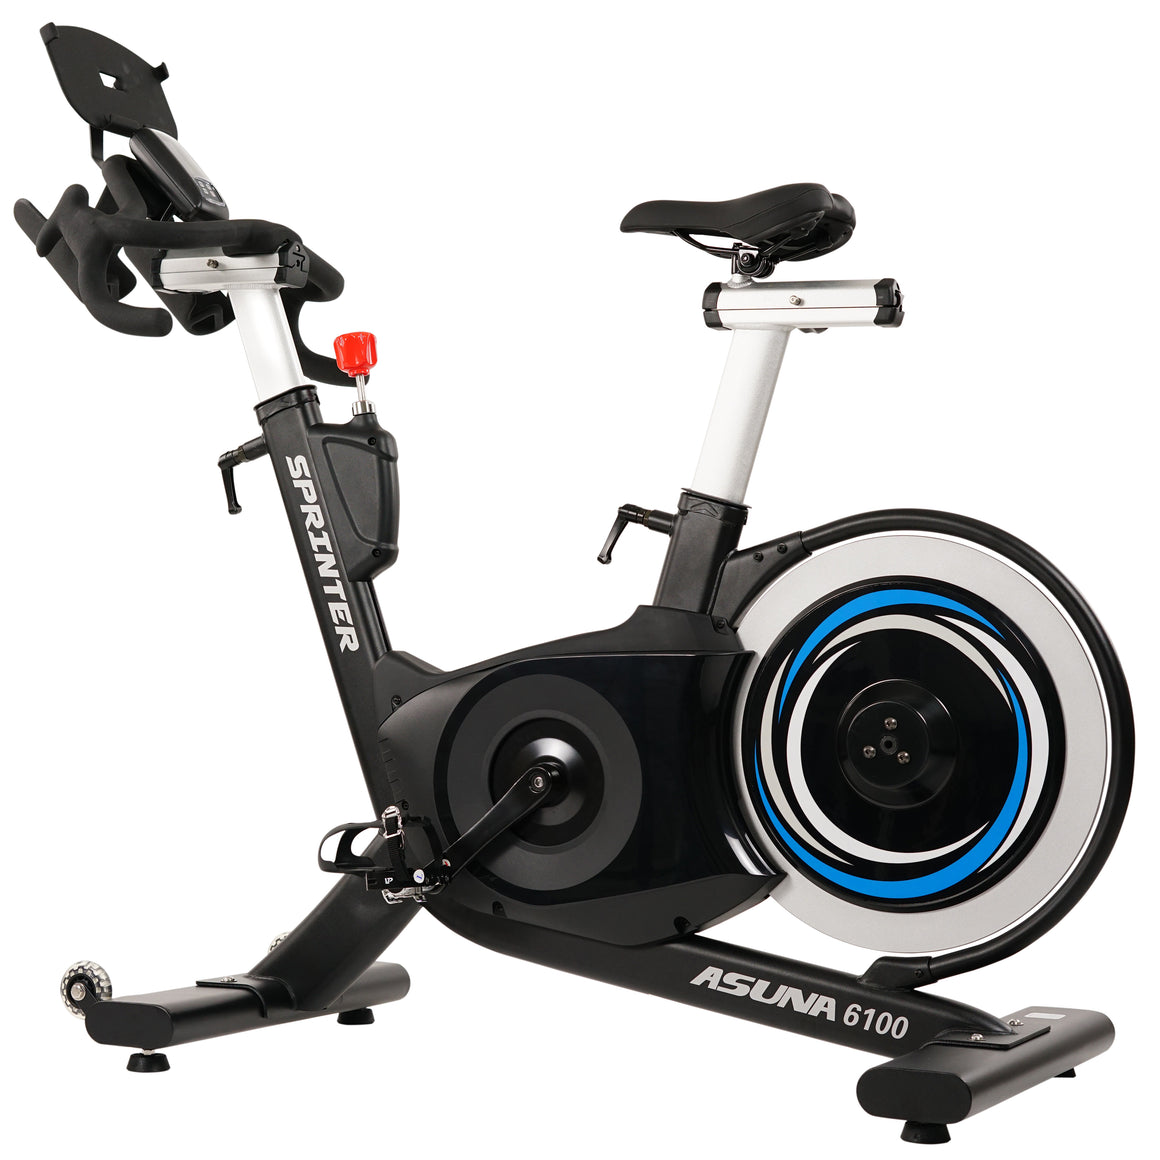 ASUNA 6100 Sprinting Commercial Indoor Cycling Bike - Indoor Cyclery